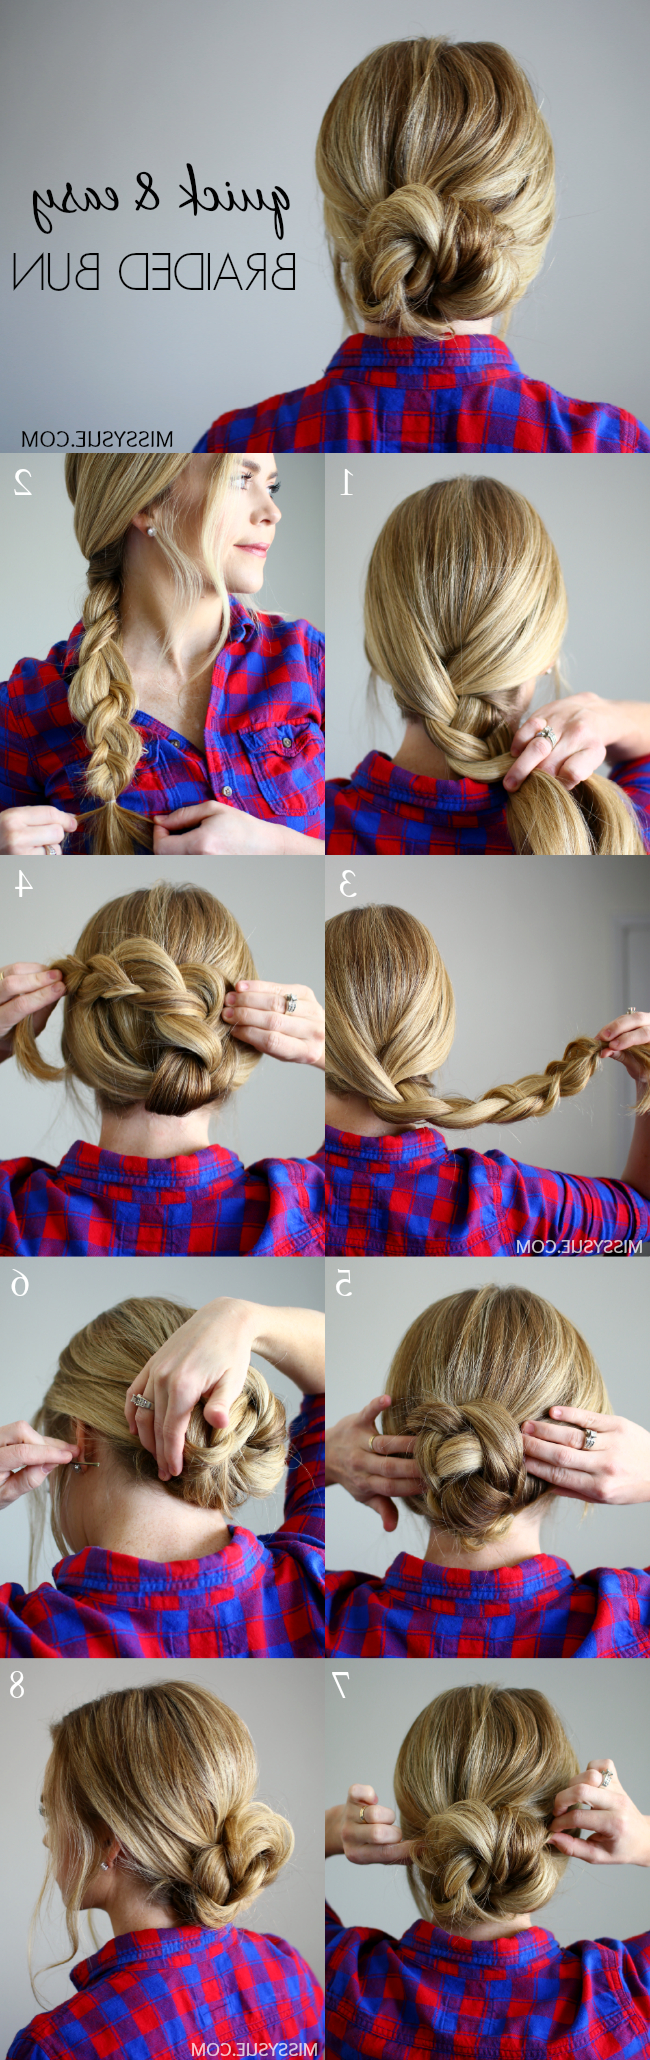 2020 Low Braided Bun Updo Hairstyles In Quick And Easy Braided Bun (View 17 of 20)